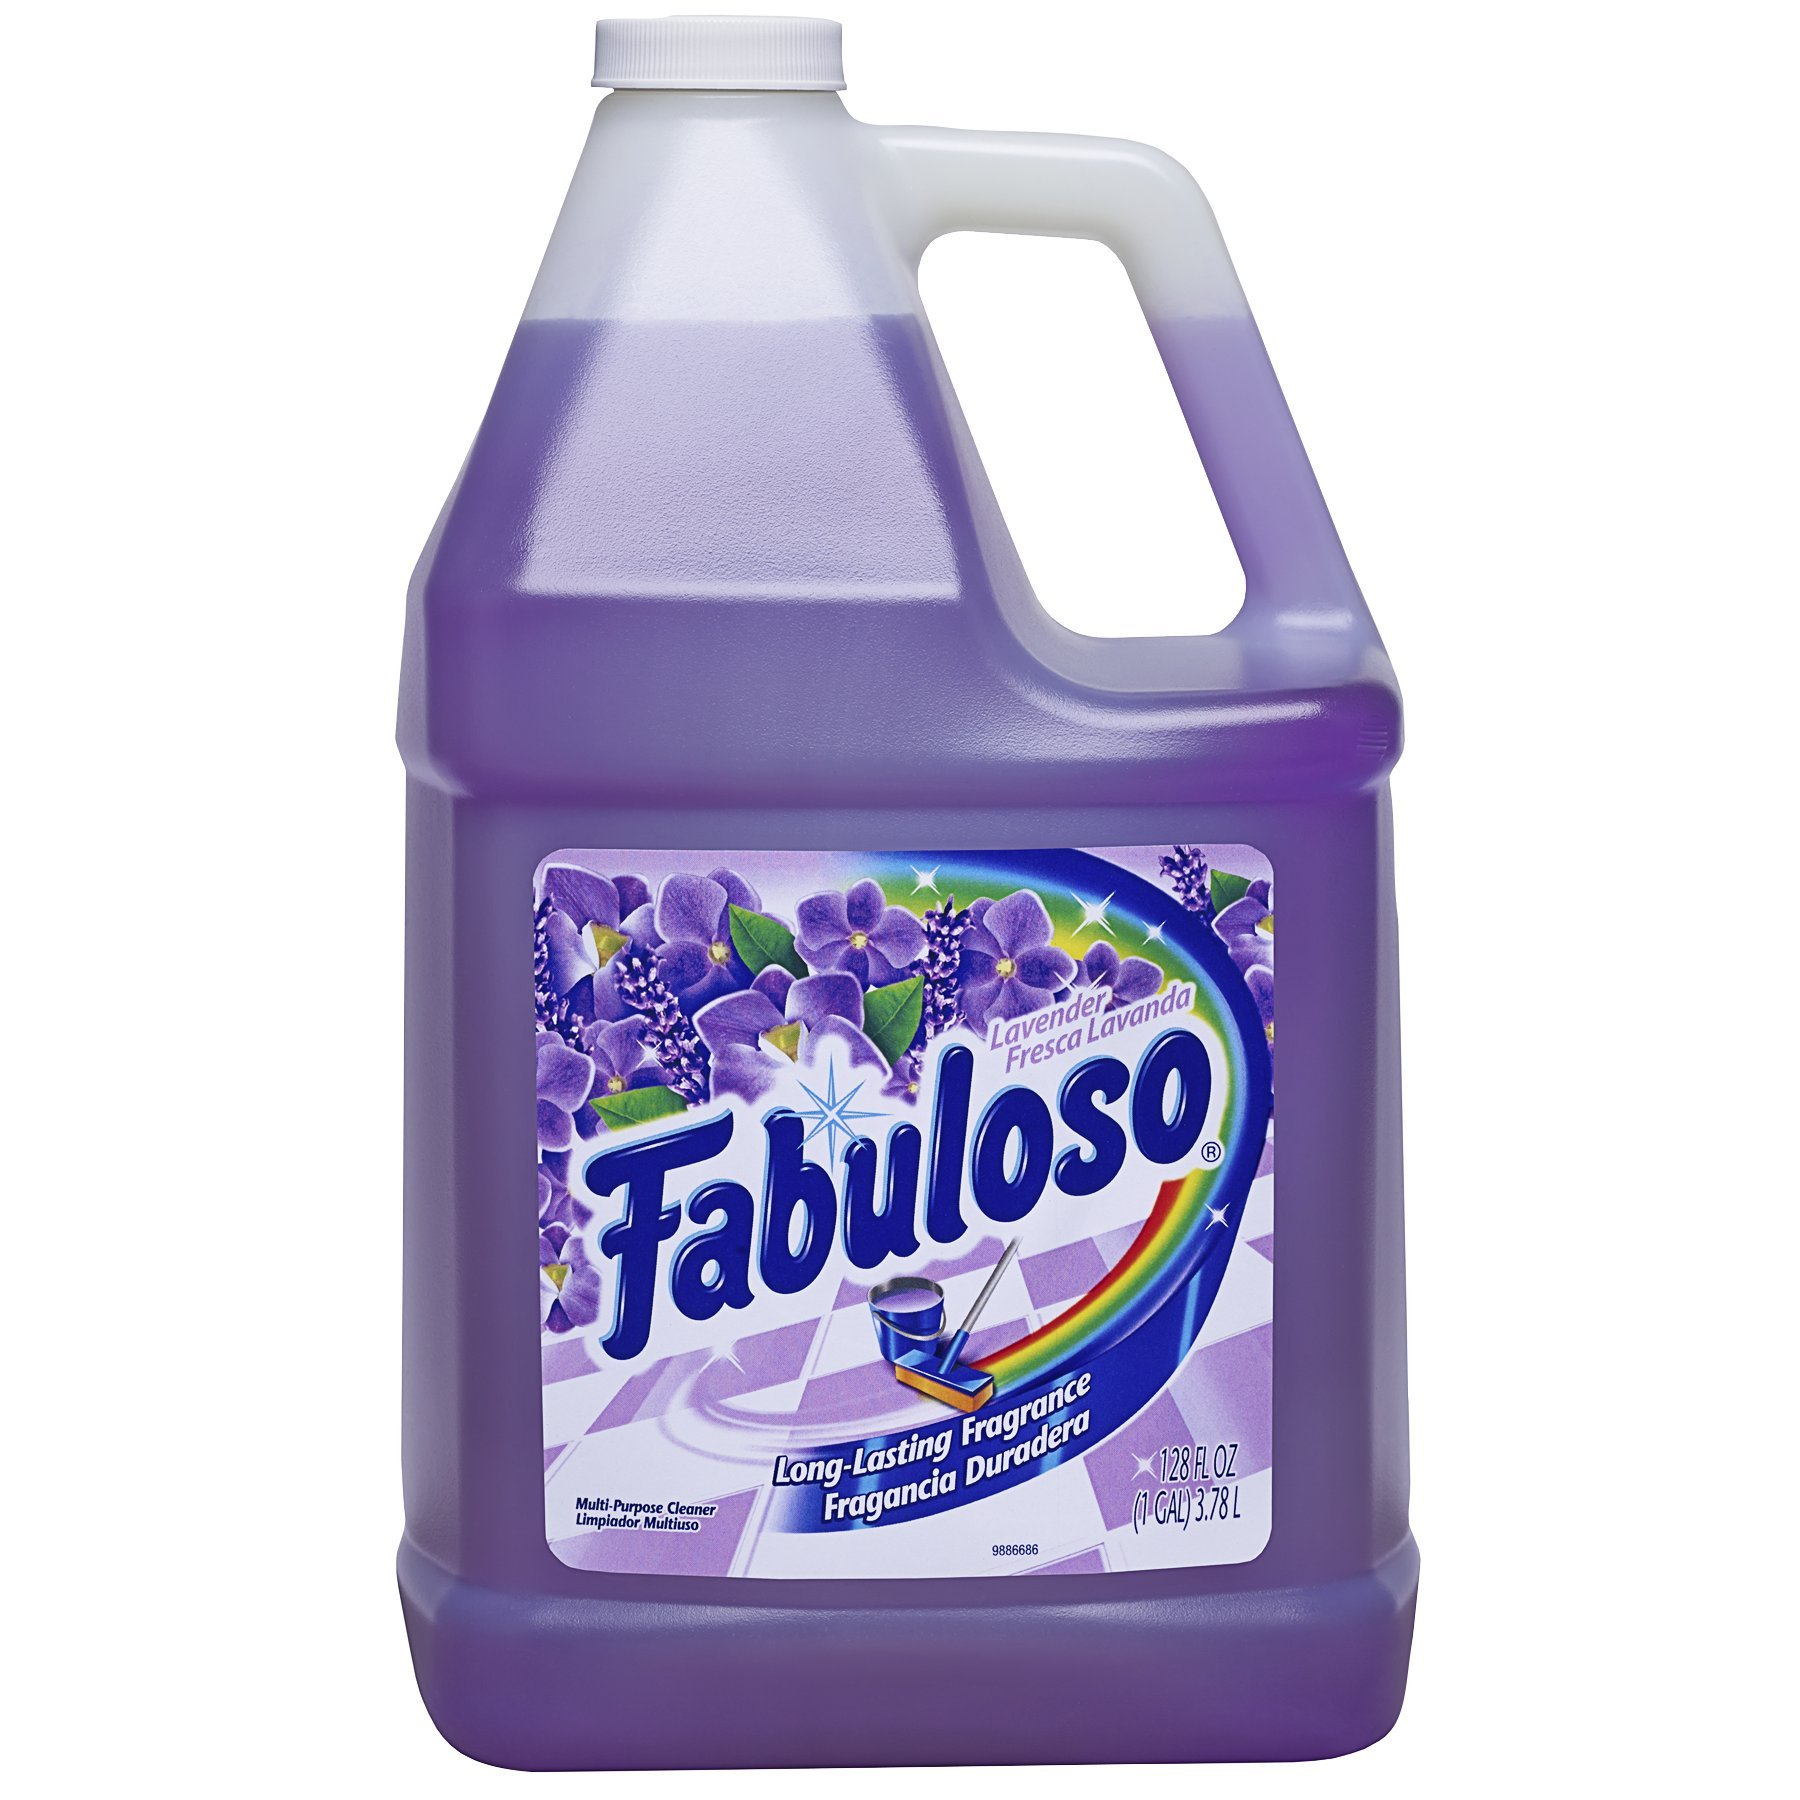 FABULOSO All Purpose Cleaner, Lavender, Bathroom Cleaner, Toilet Cleaner, Floor Cleaner, Glass Cleaner, Washing Machine and Dishwasher Surface Cleaner, Mop Cleanser, 128 Fluid Ounce (Pack of 2) (US05402A)